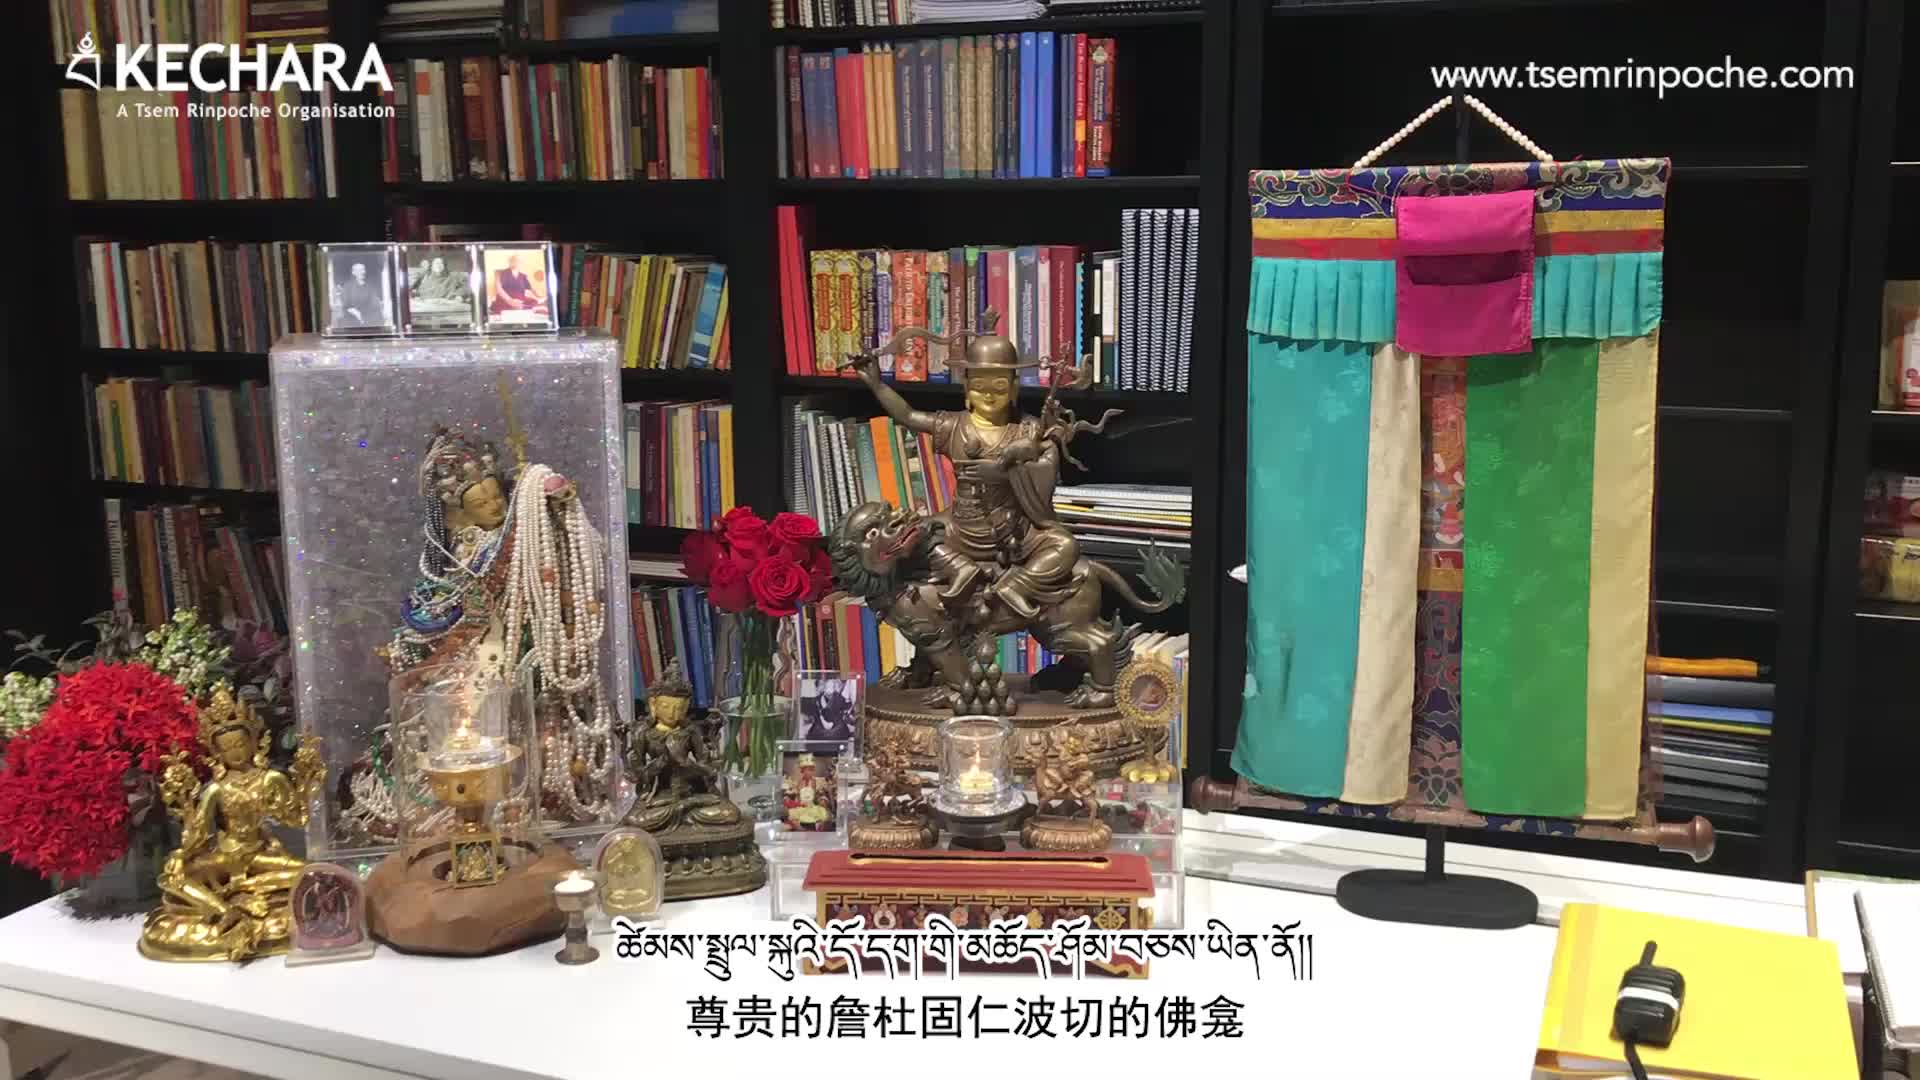 This is the shrine next to my working table where I sit daily. Tsem Rinpoche